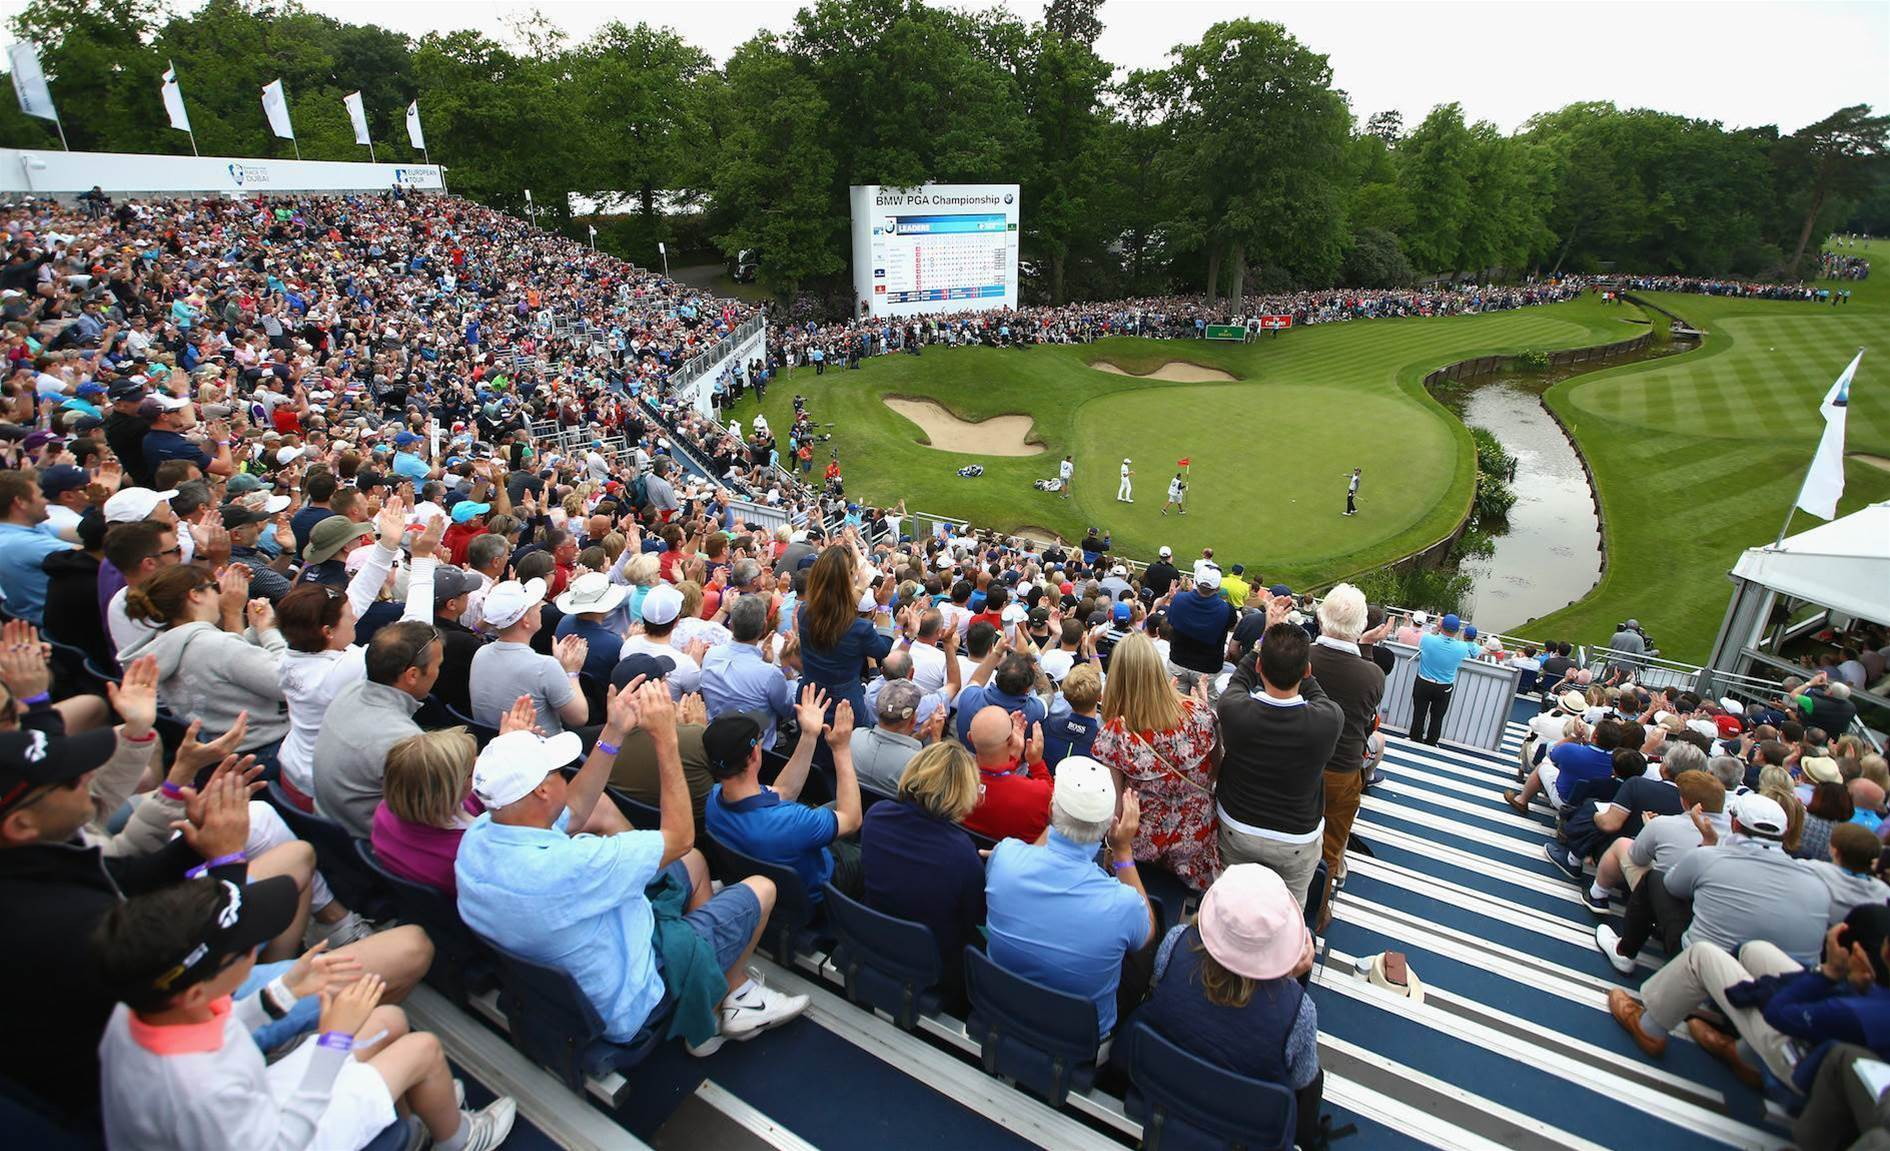 Fireworks expected for new GolfSixes teams event